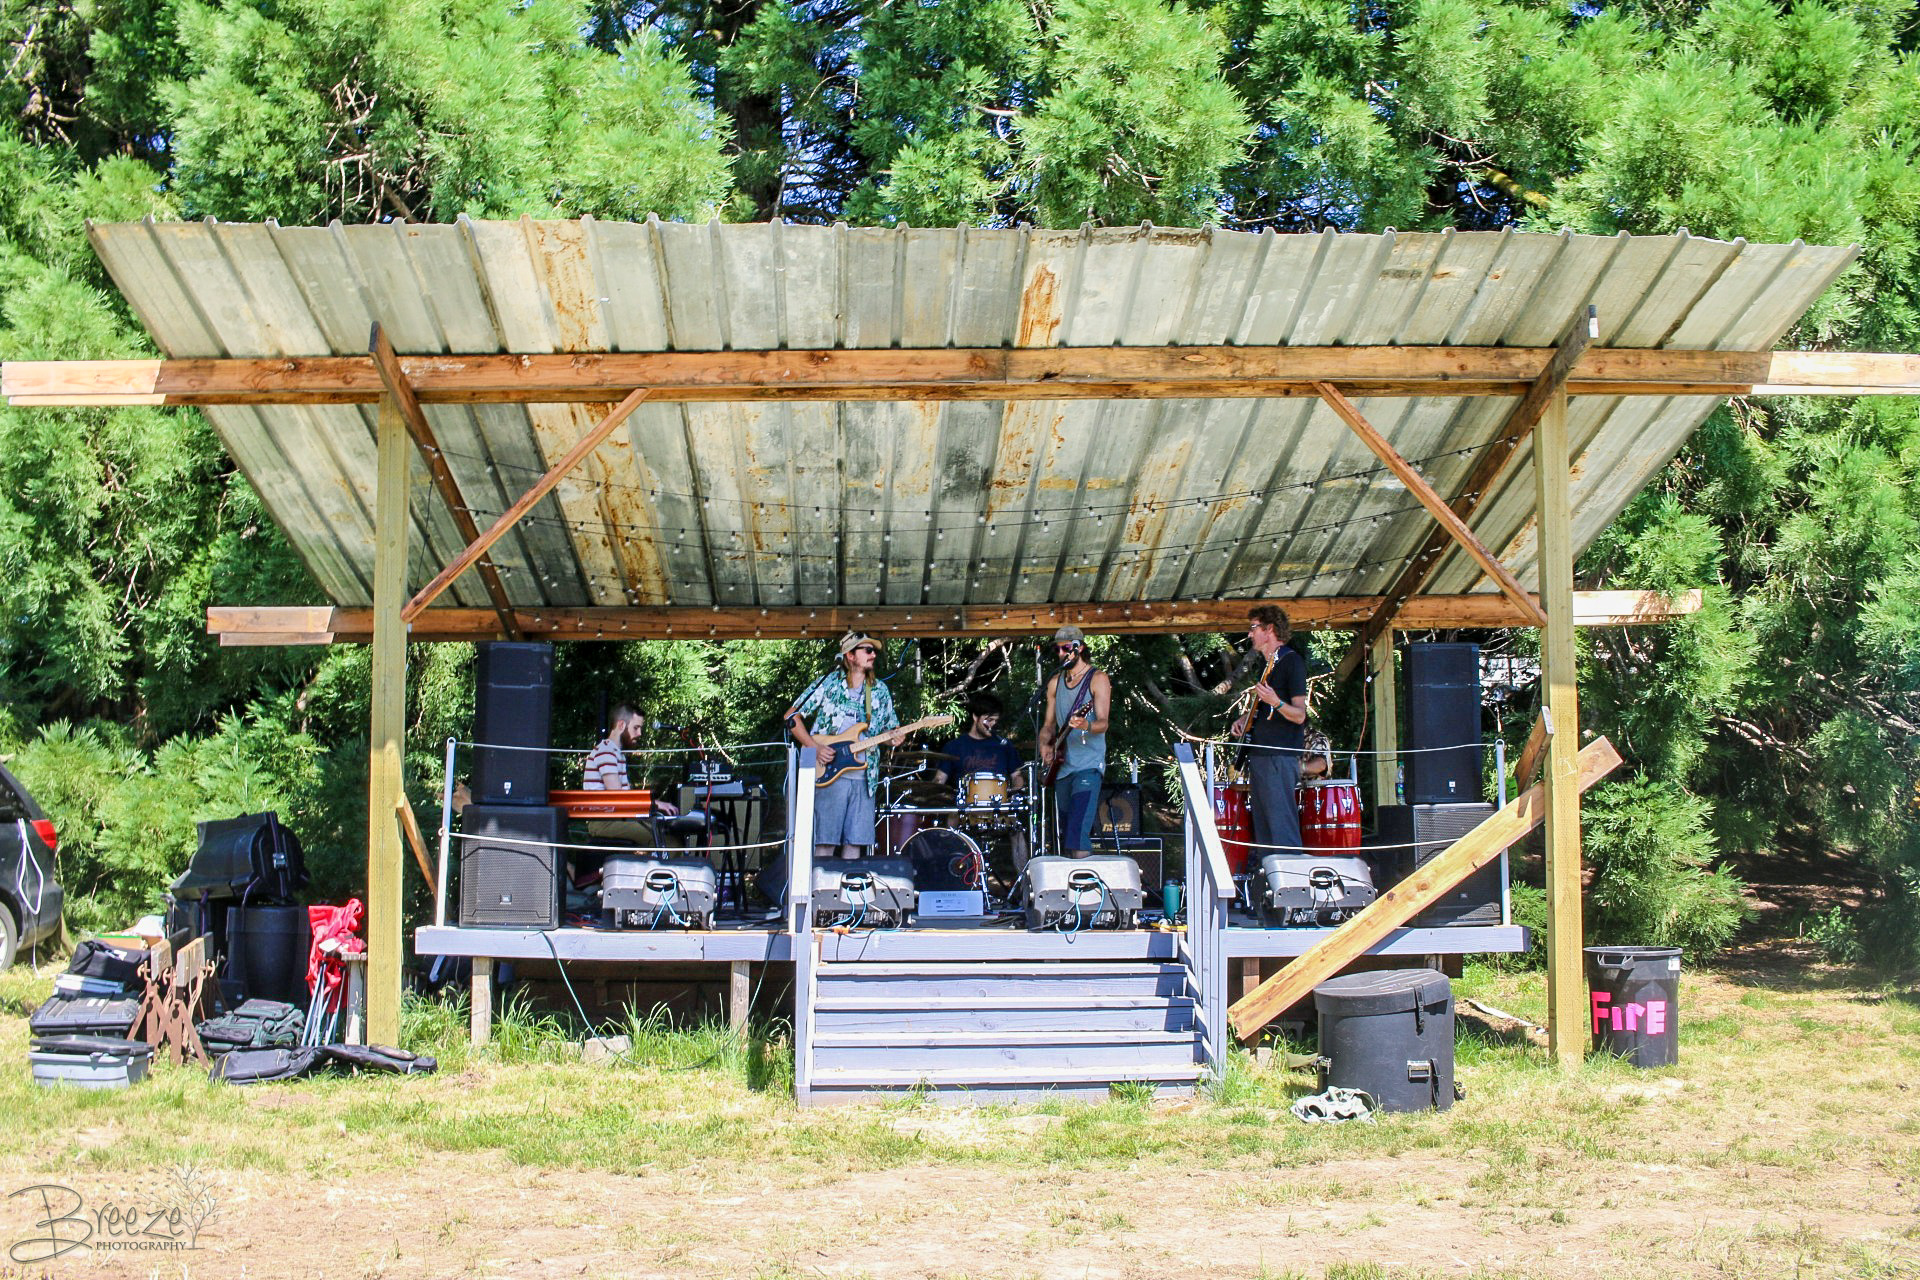 The High Council Band - Playing a set at Quiet Camp